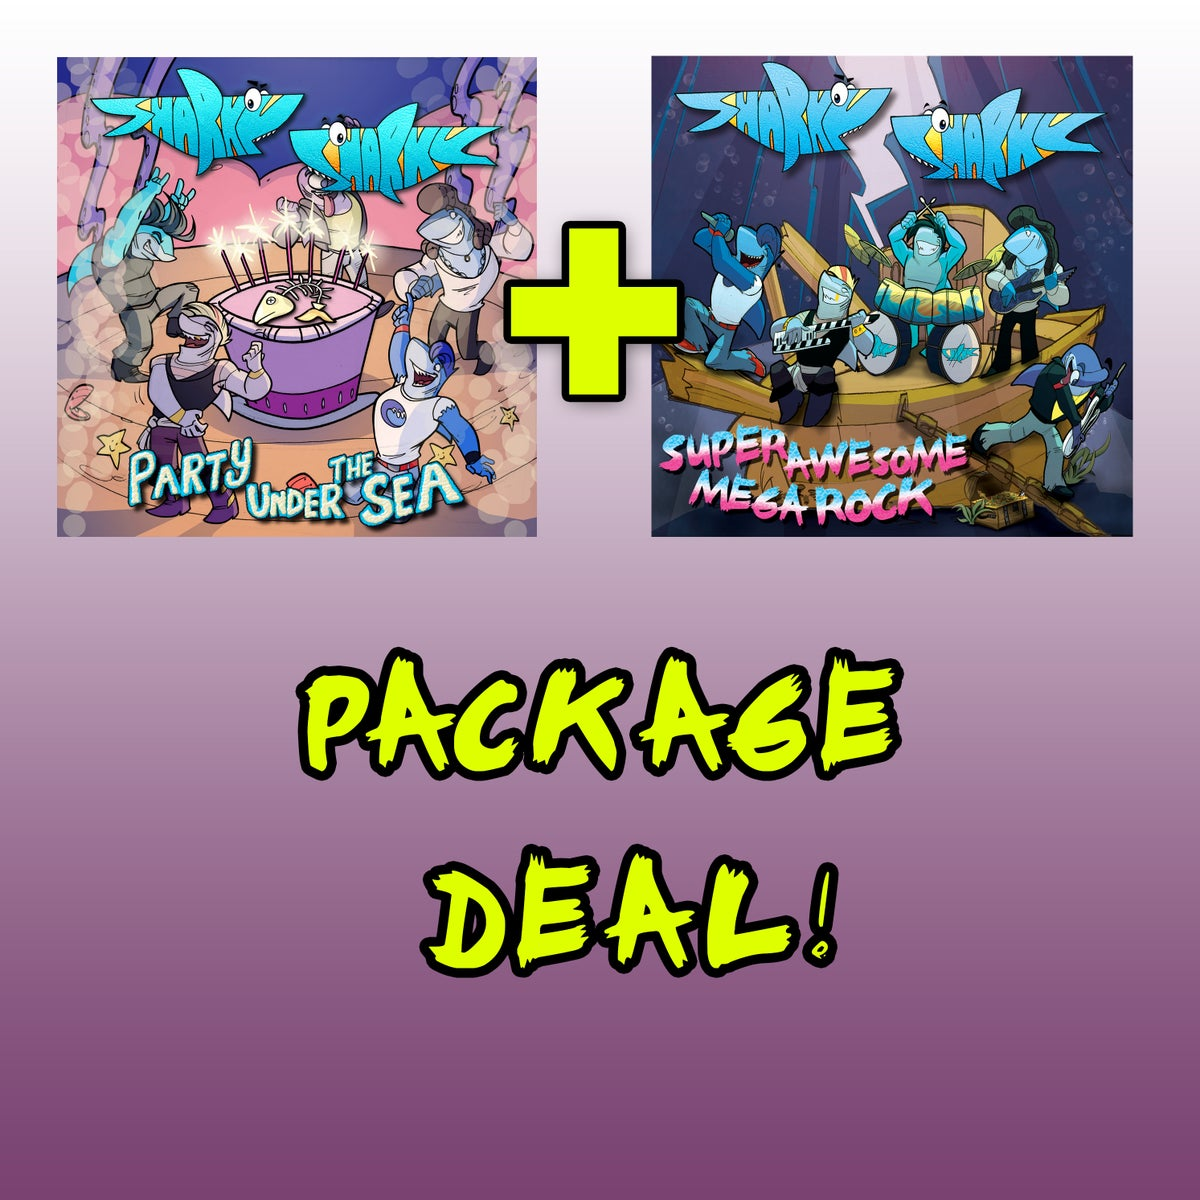 Image of SUPER AWESOME MEGA ROCK + Party Under the Sea PACKAGE DEAL!